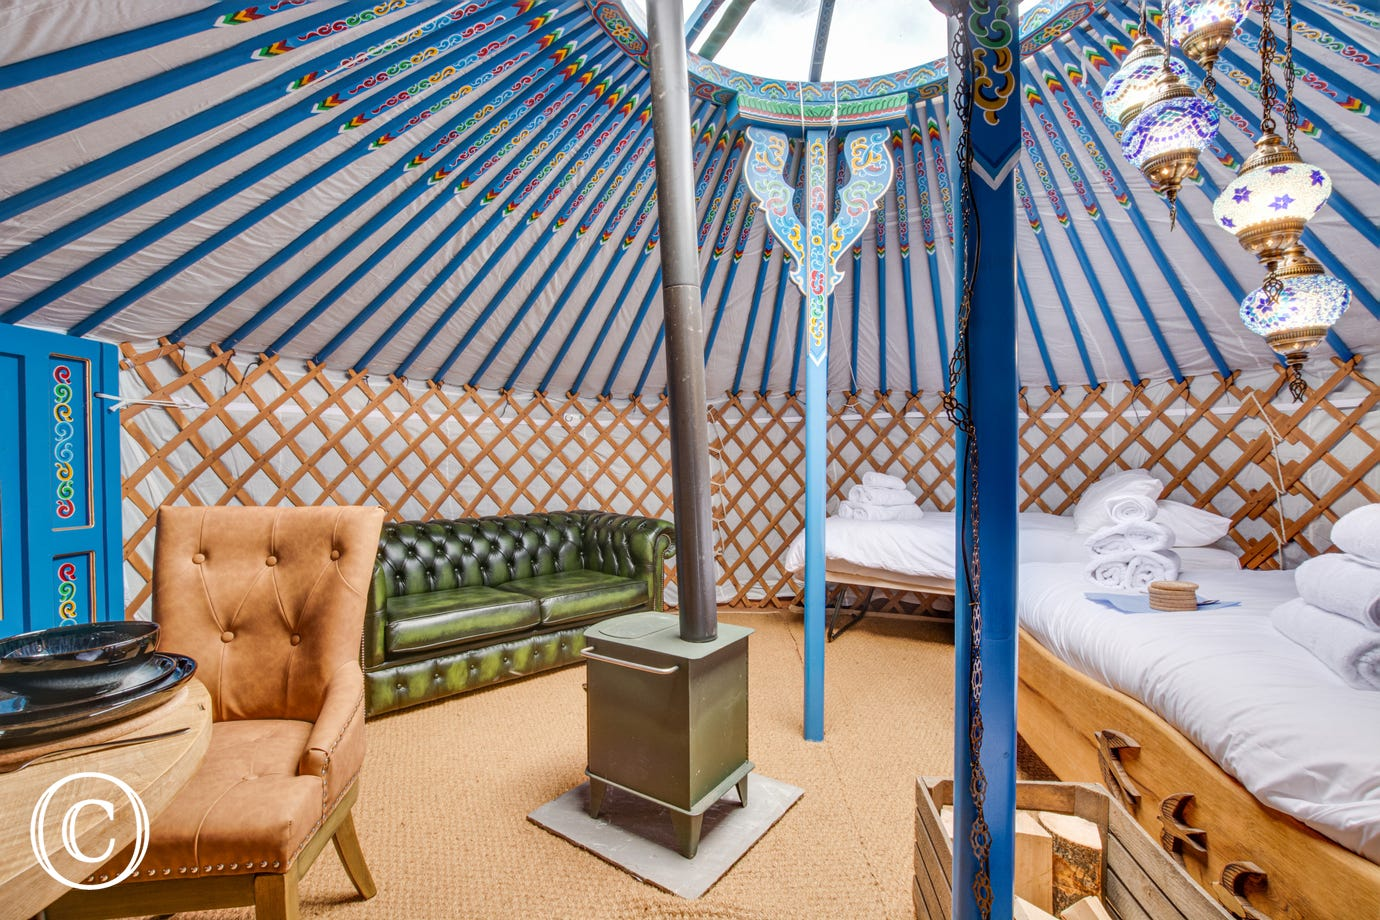 Beautiful interior of Swallow Yurt complete with woodburning stove